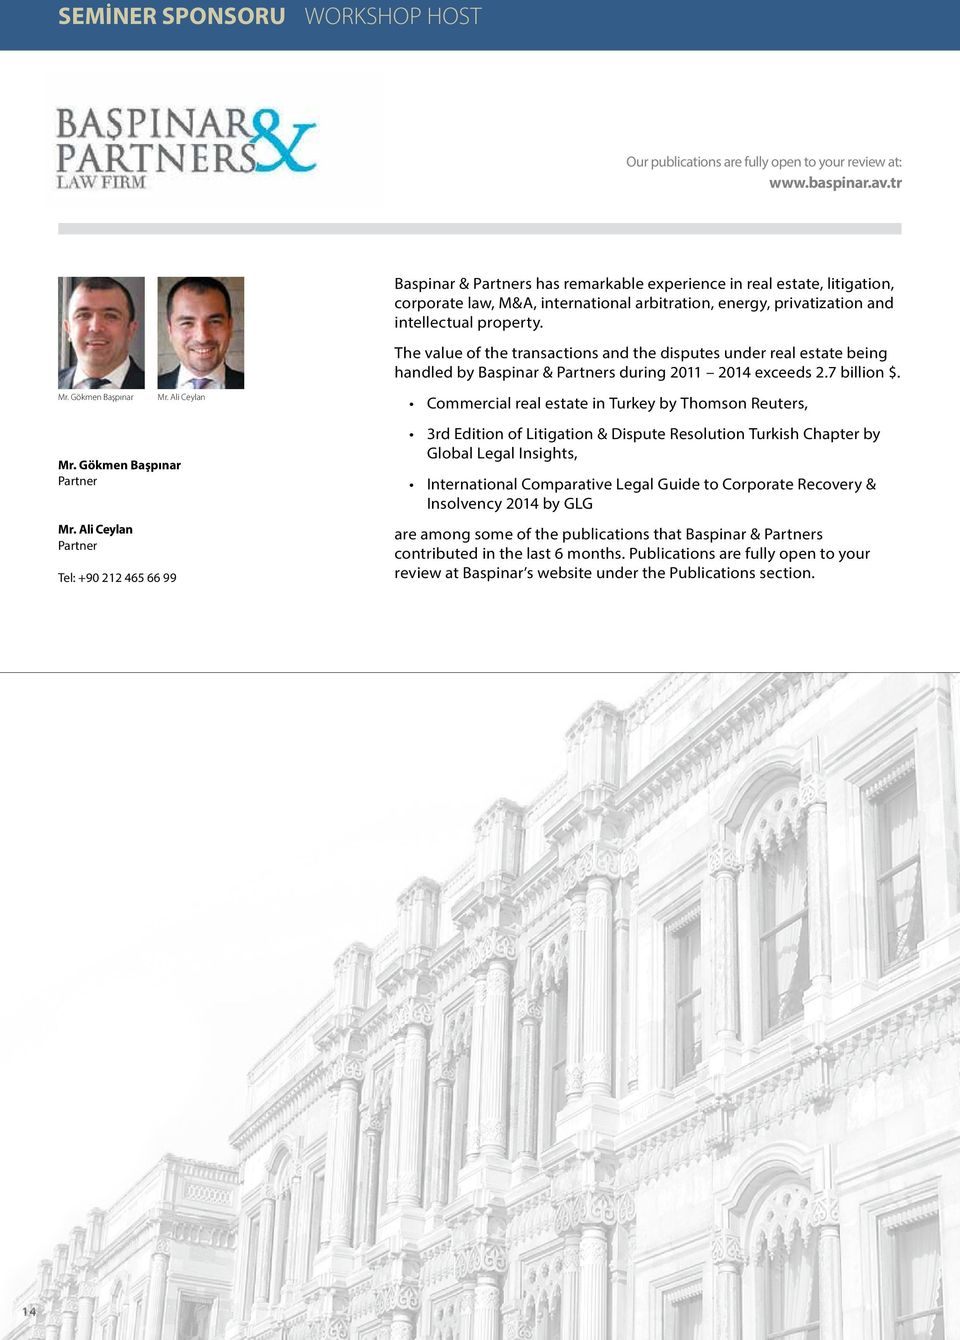 The value of the transactions and the disputes under real estate being handled by Baspinar & Partners during 2011 2014 exceeds 2.7 billion $. Mr. Gökmen Başpınar Mr. Gökmen Başpınar Partner Mr.